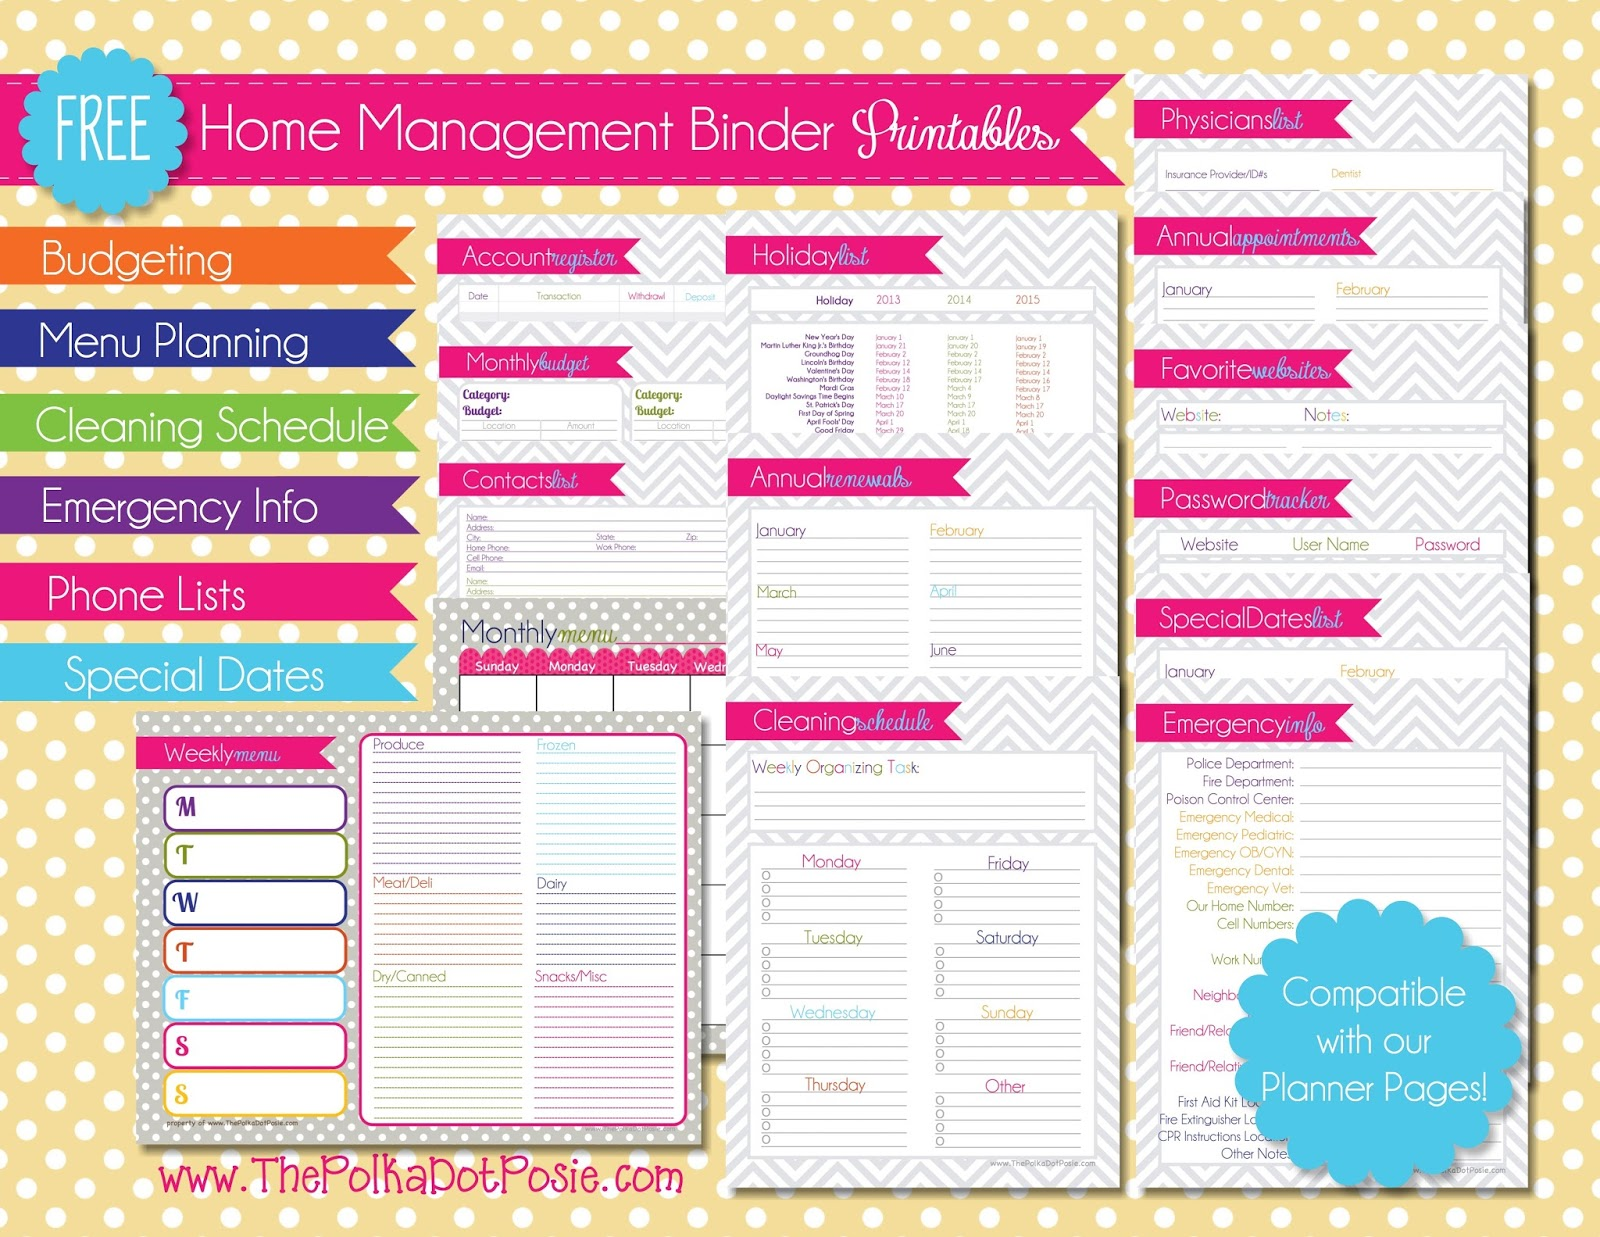 8 Images of Home Management Binder Printables Password Sheet